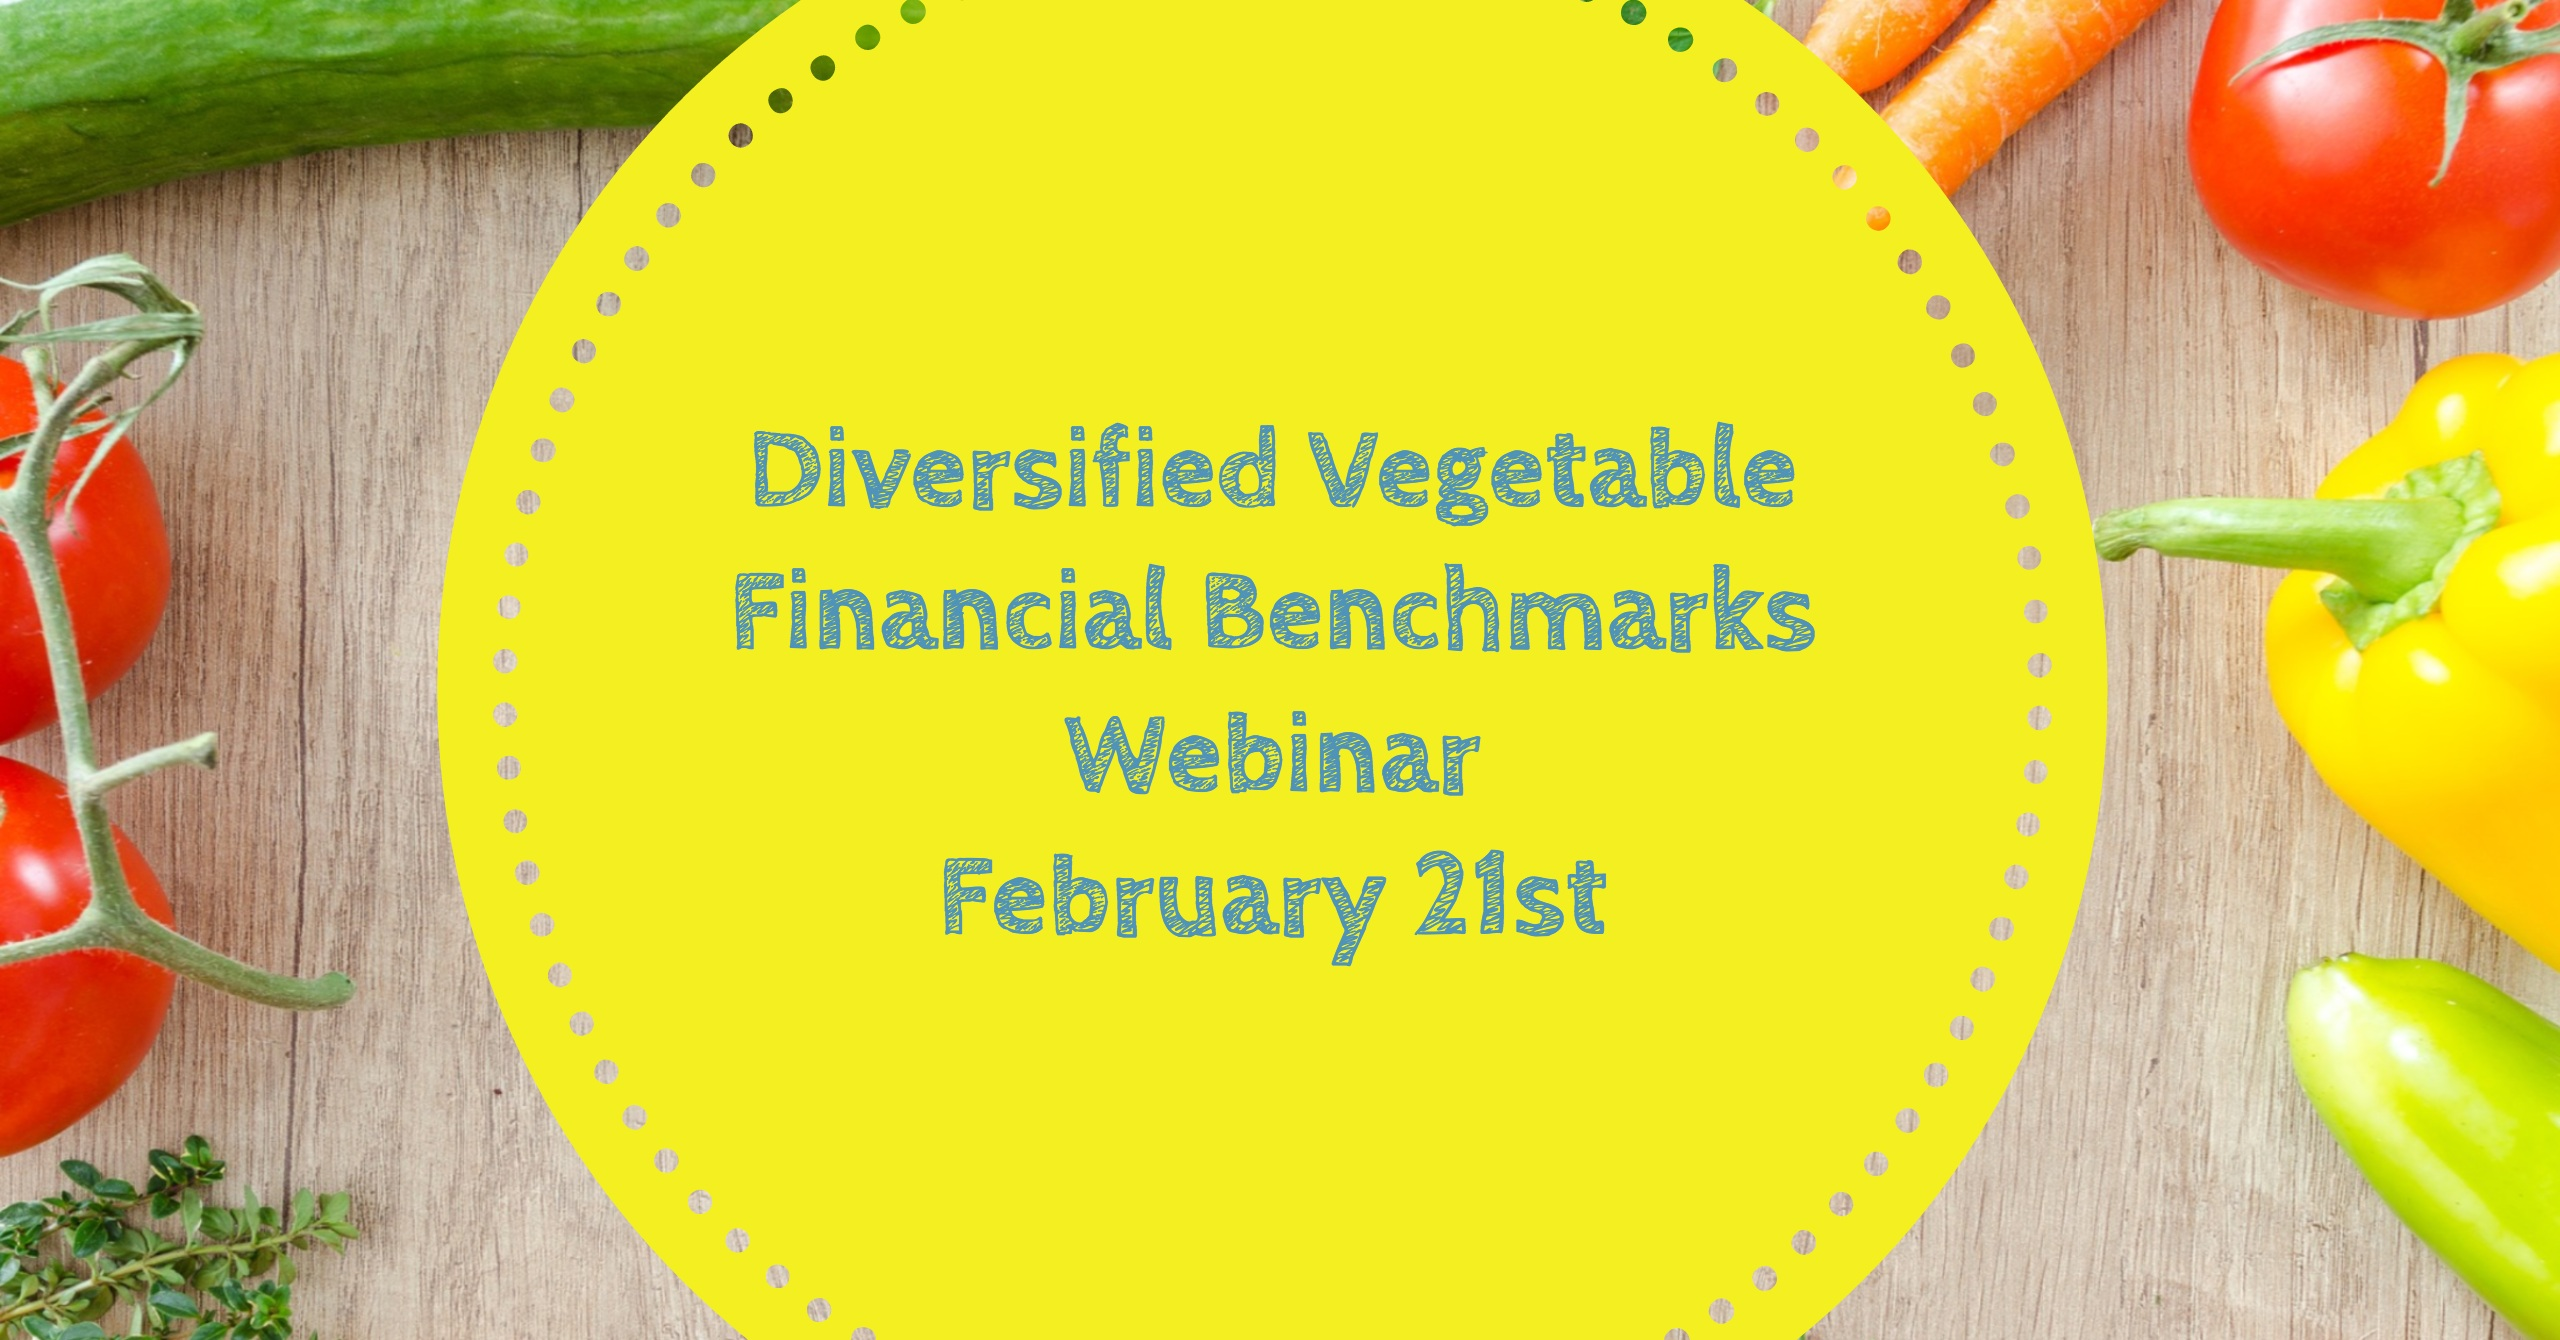 Diversified Vegetable Farm Financial Benchmarks Webinar